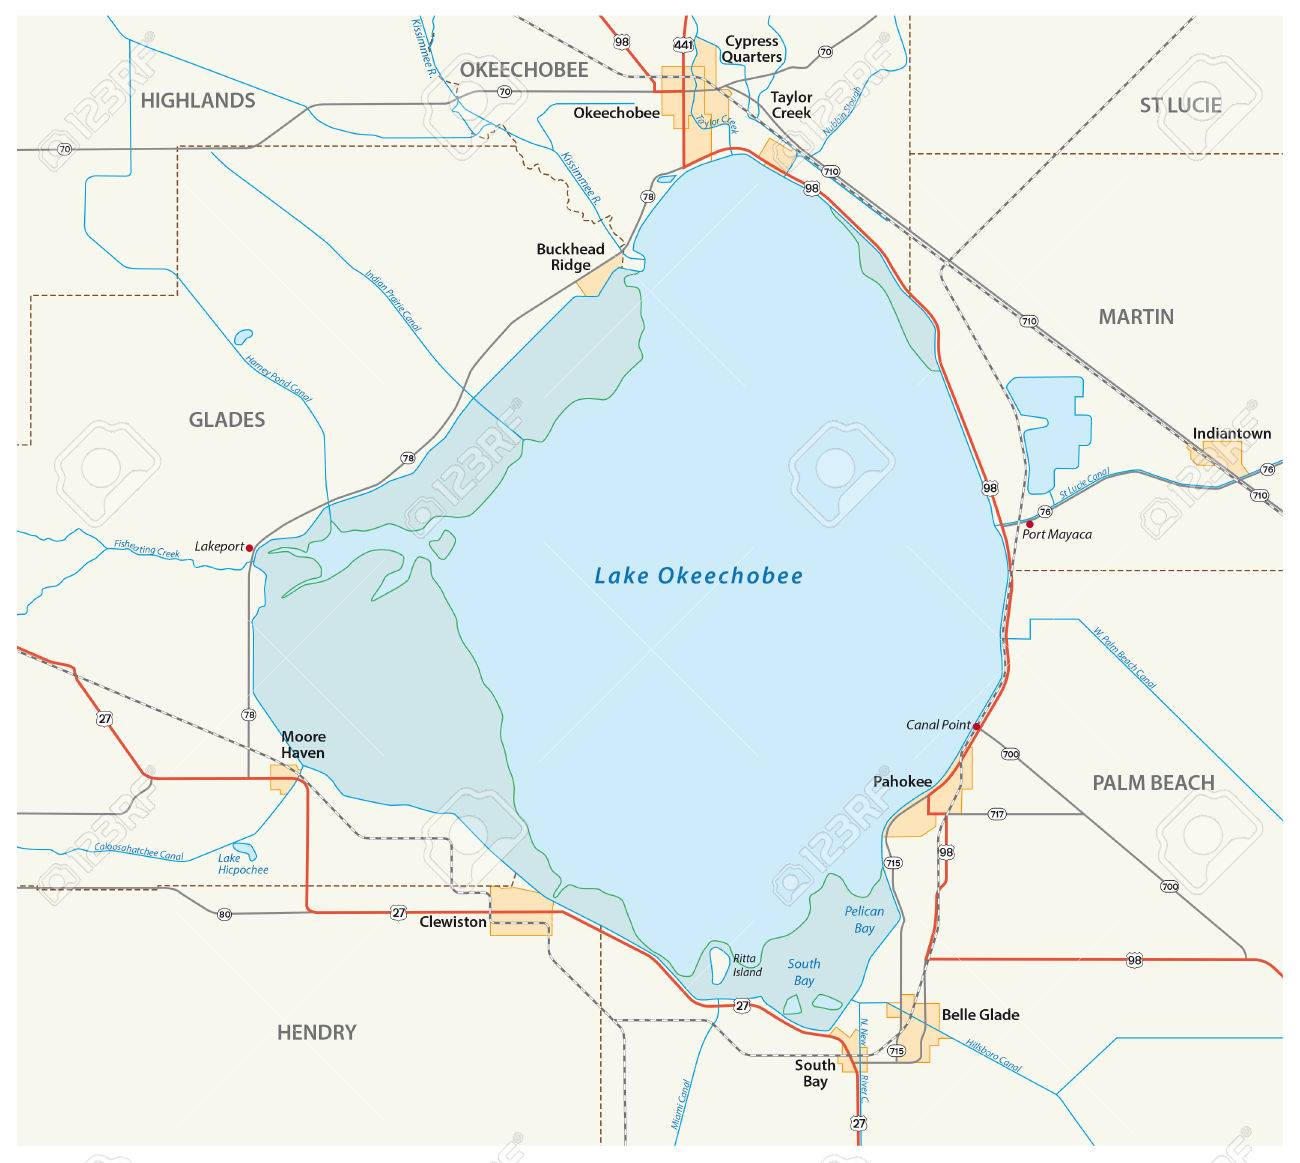 Vector Road Map Of Lake Okeechobee In The US State Of Florida - Us map florida